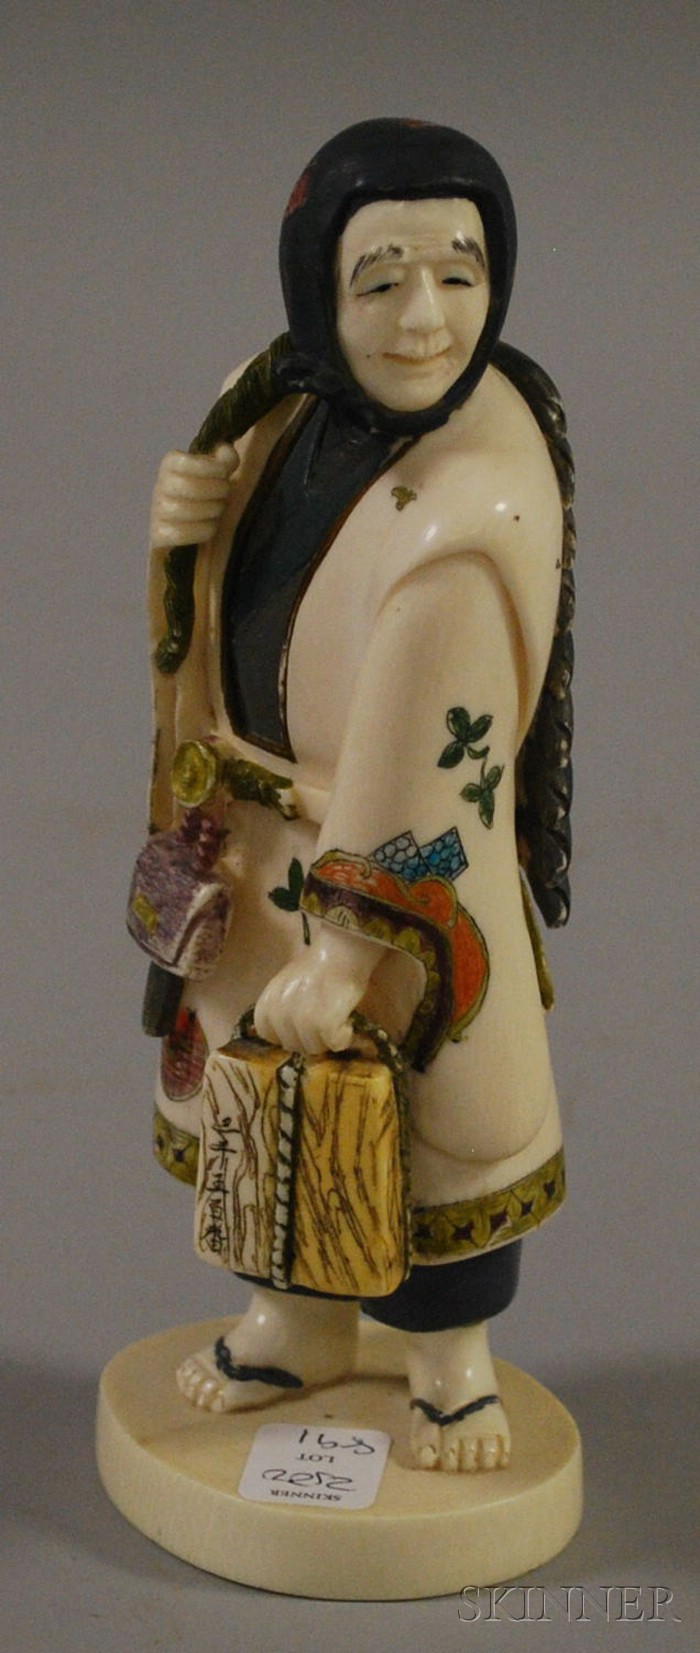 Japanese Carved and Painted Ivory Tusk of a Fishmonger